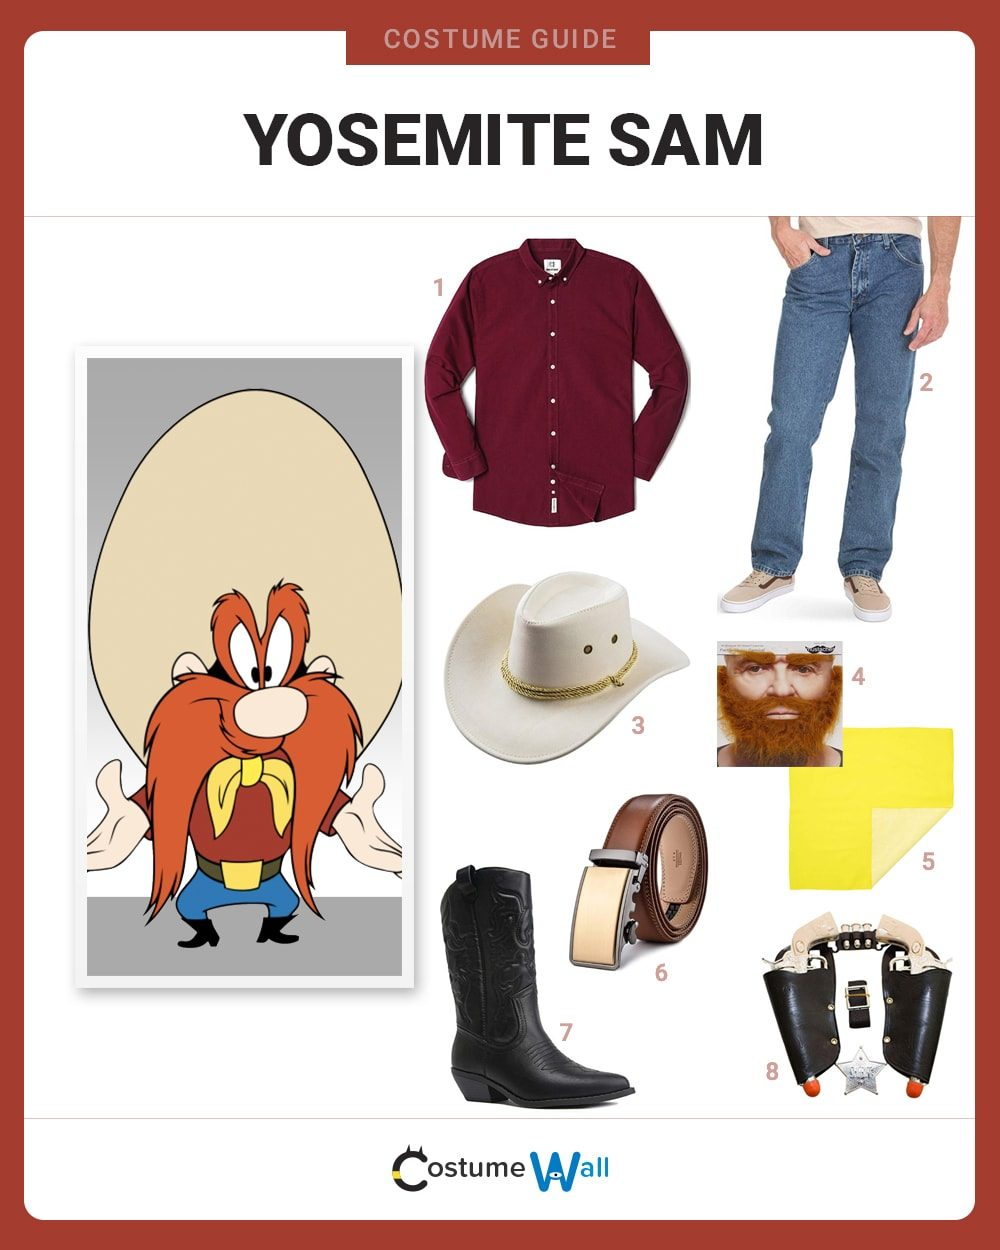 Yosemite Sam Costume Guide